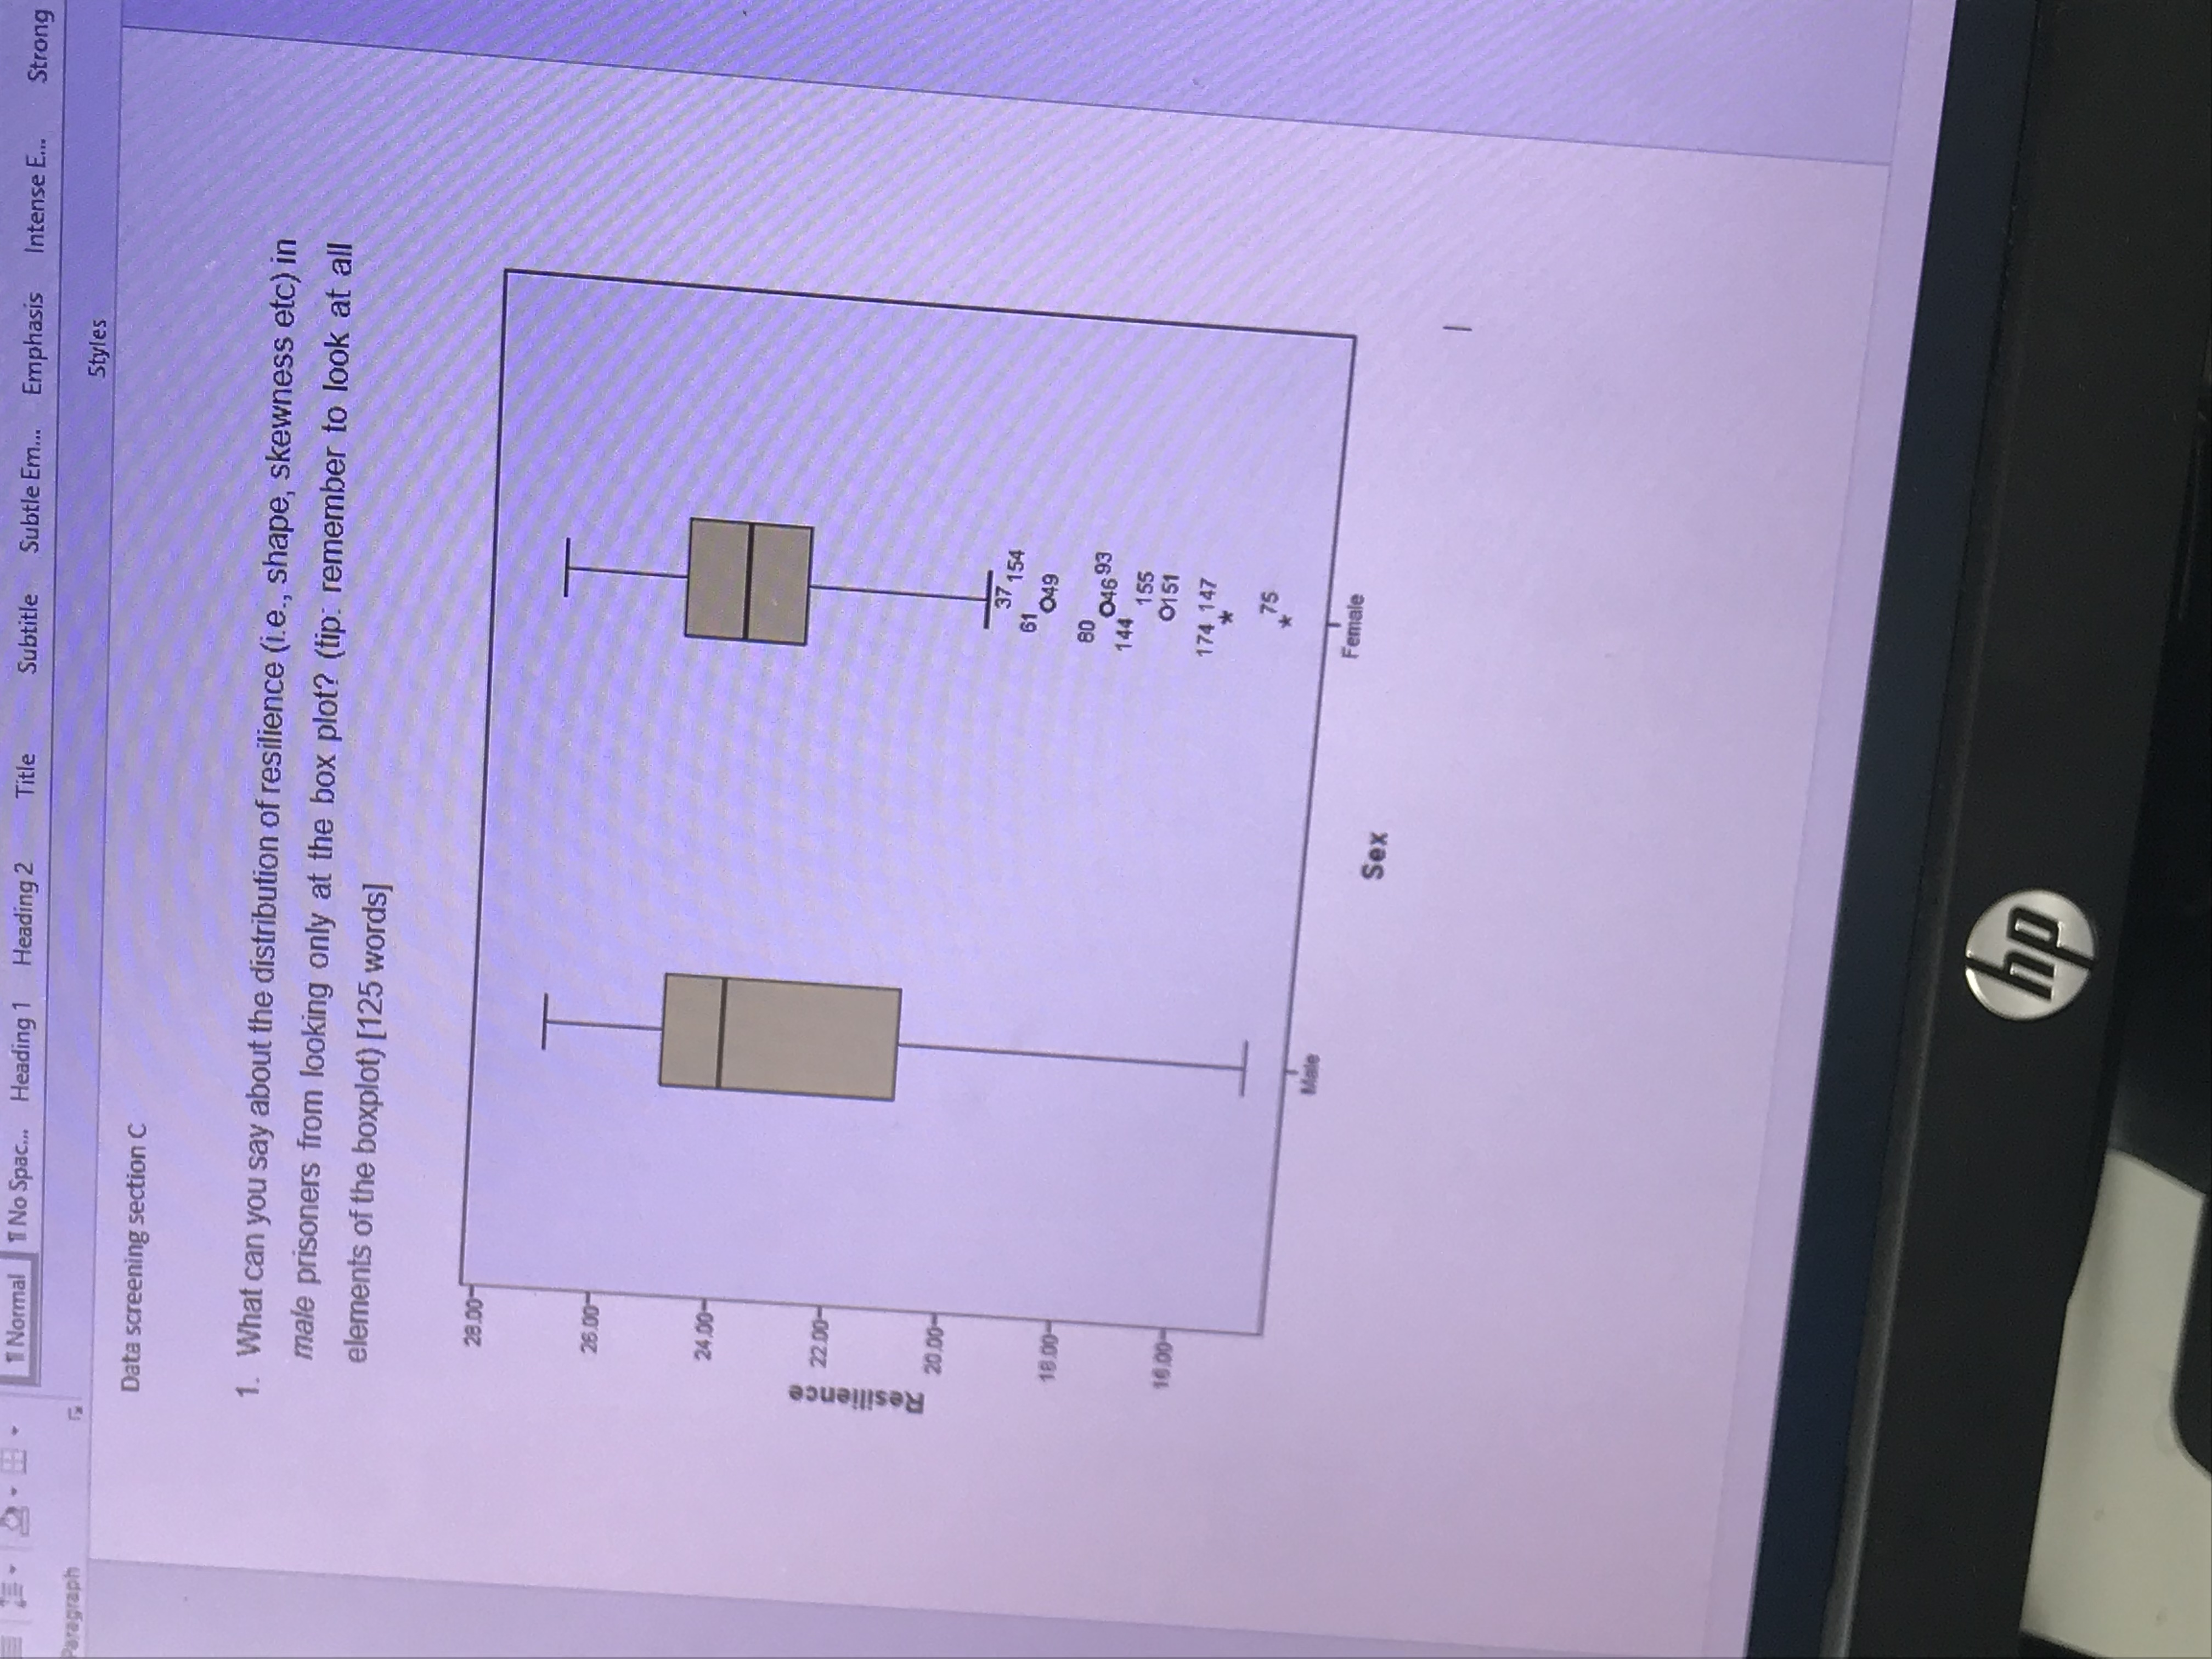 73 Questions With Answers In Box Plot